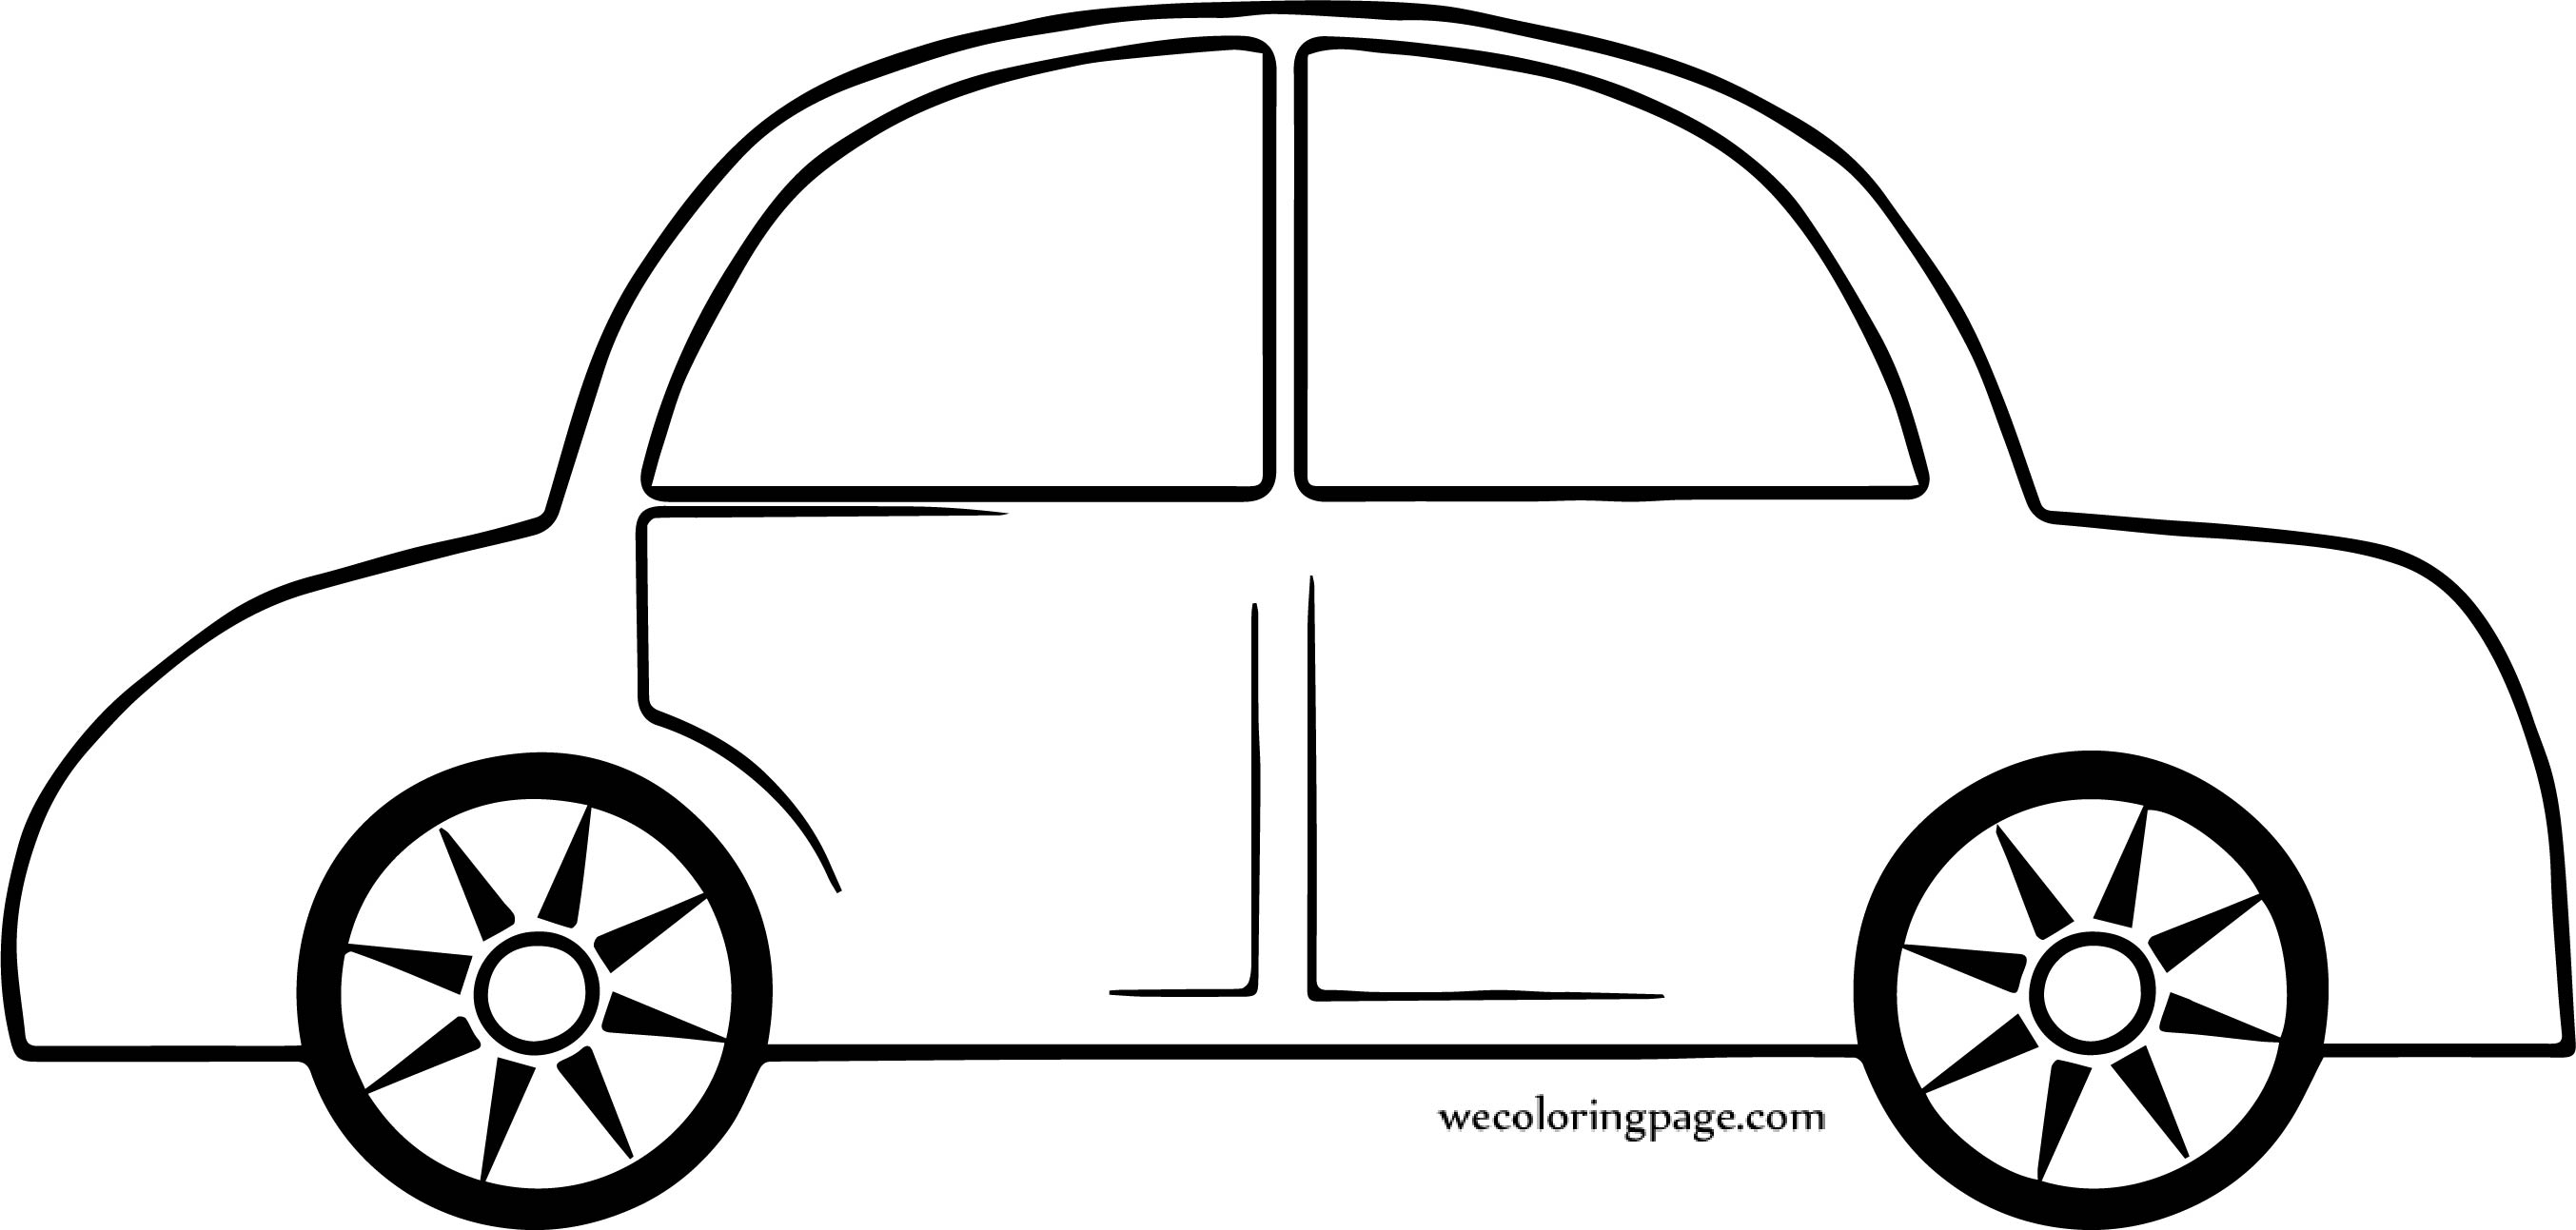 When Side Car Coloring Page